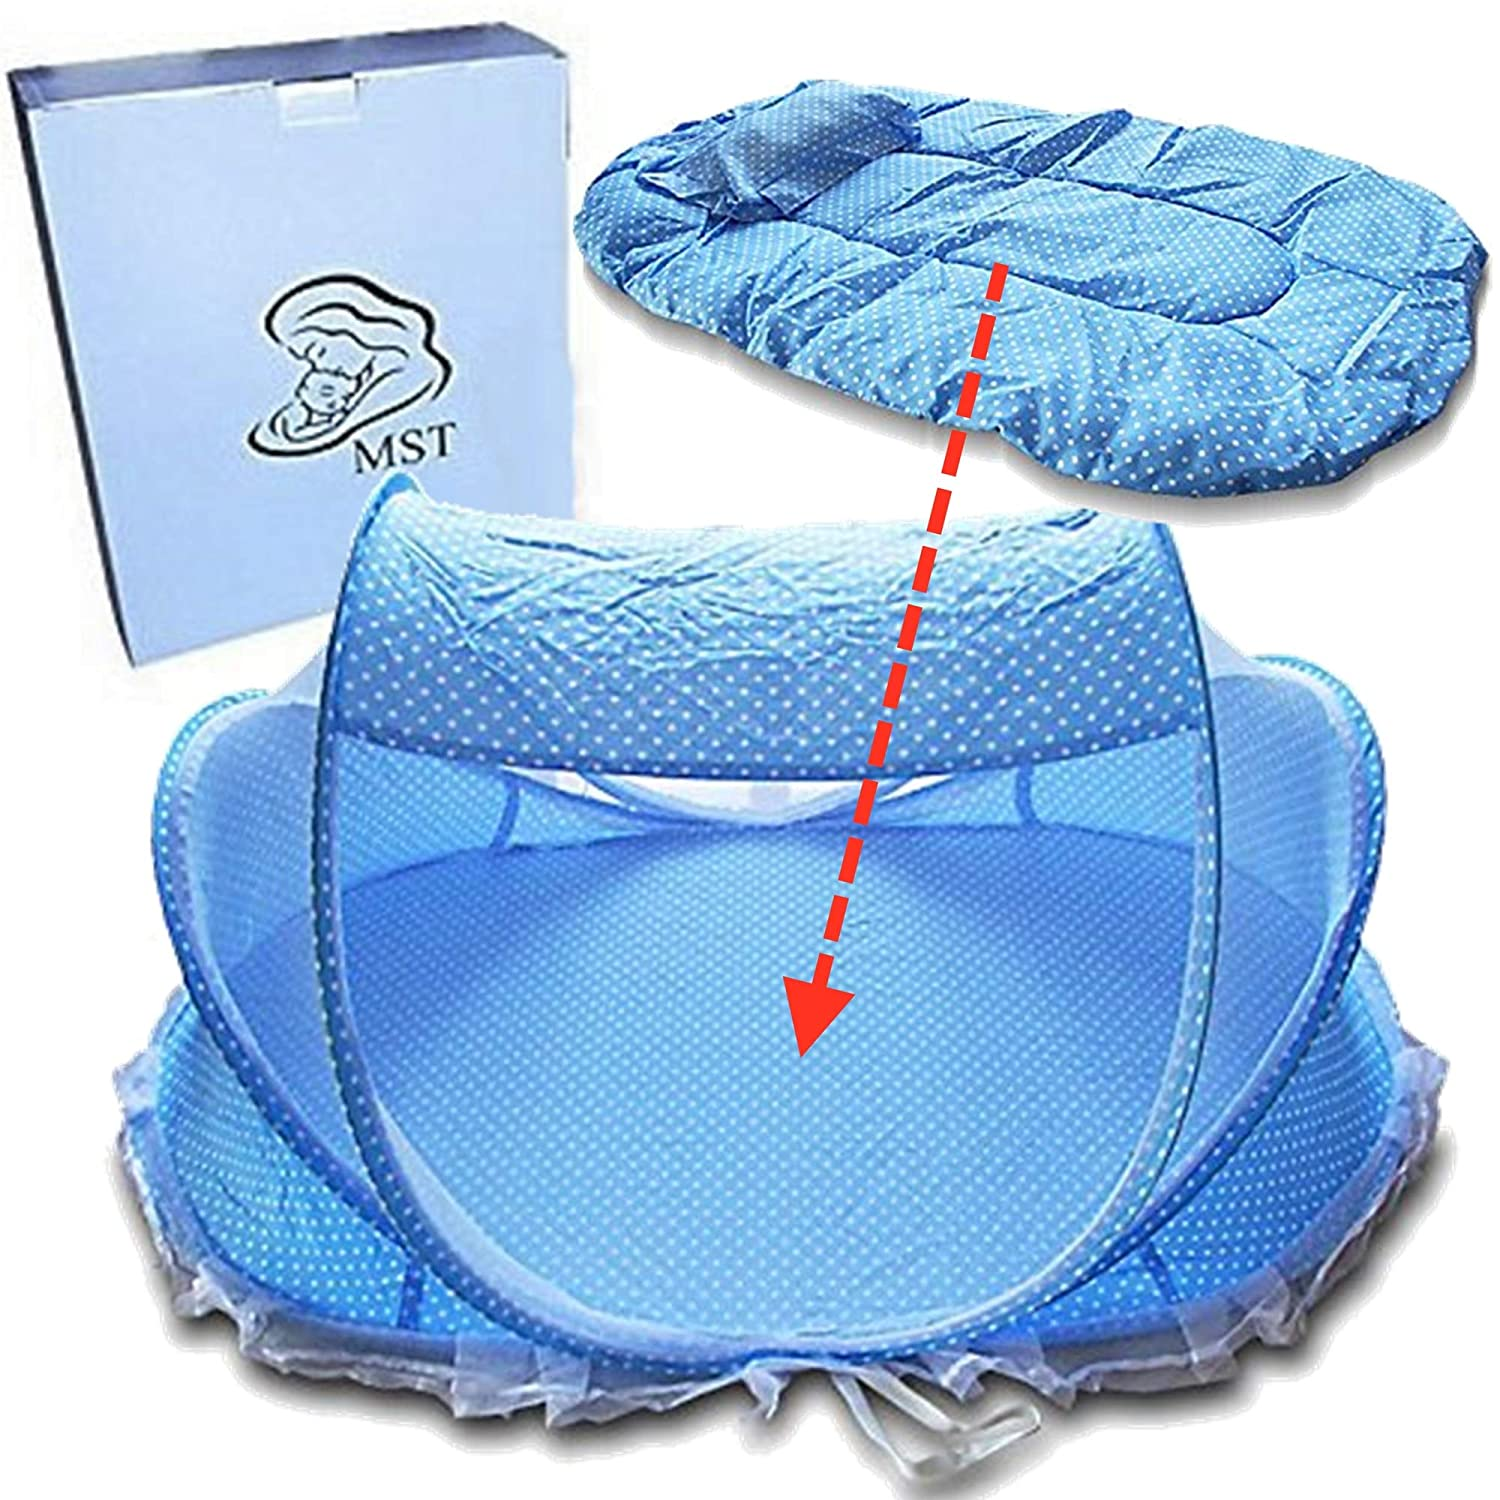 Baby Travel Bed Crib,Foldable Baby Infant Cradle Anti-Bug Tent with Protective Mosquito Net, Portable with Mattress Pillow for 0-18 Month Baby Outdoors and Indoors(Blue) MCBInfinity